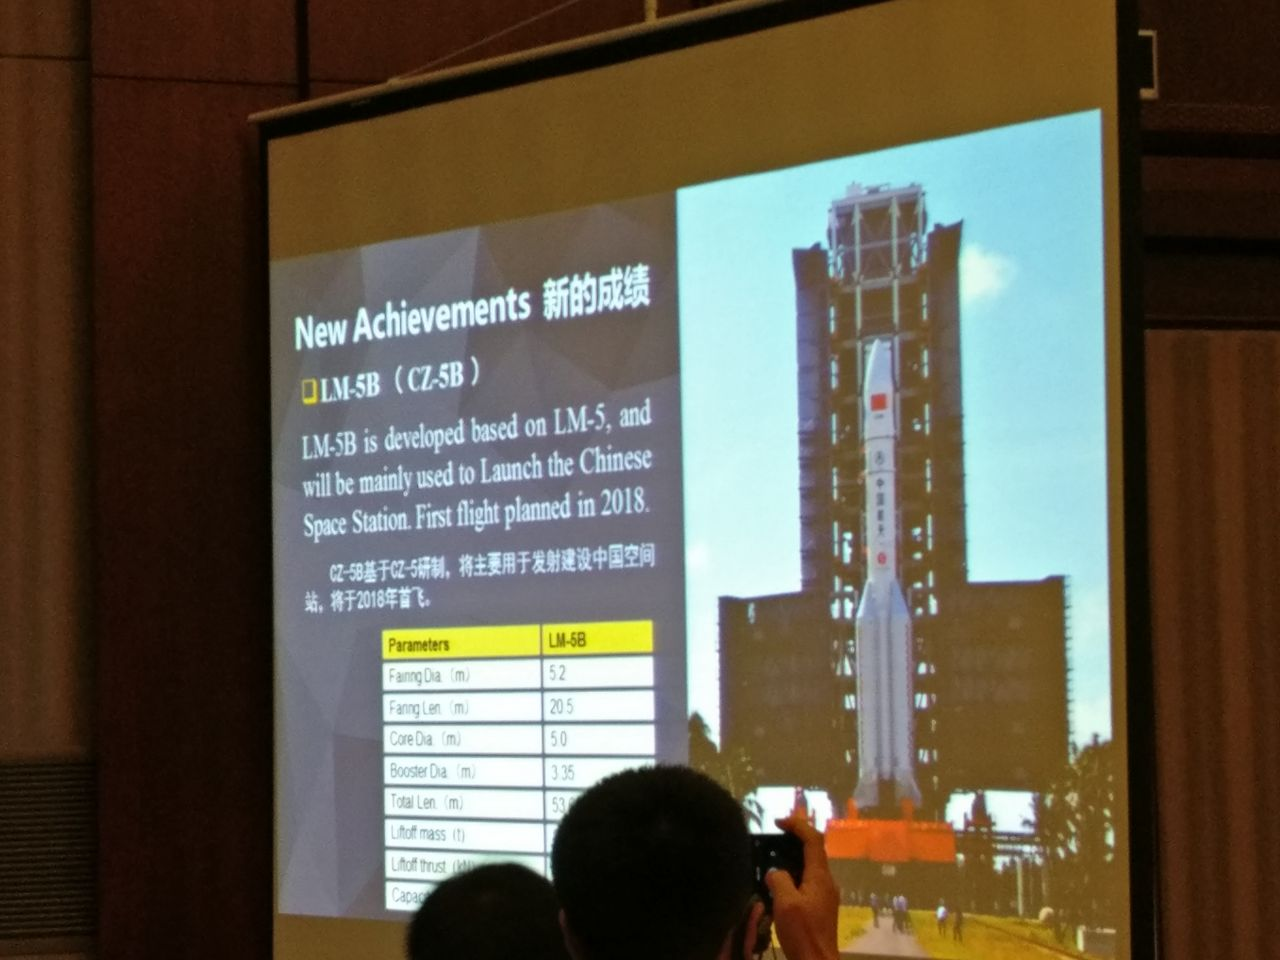 Specifications of the Long March 5B, presented at GLEX 2017 in Beijing.